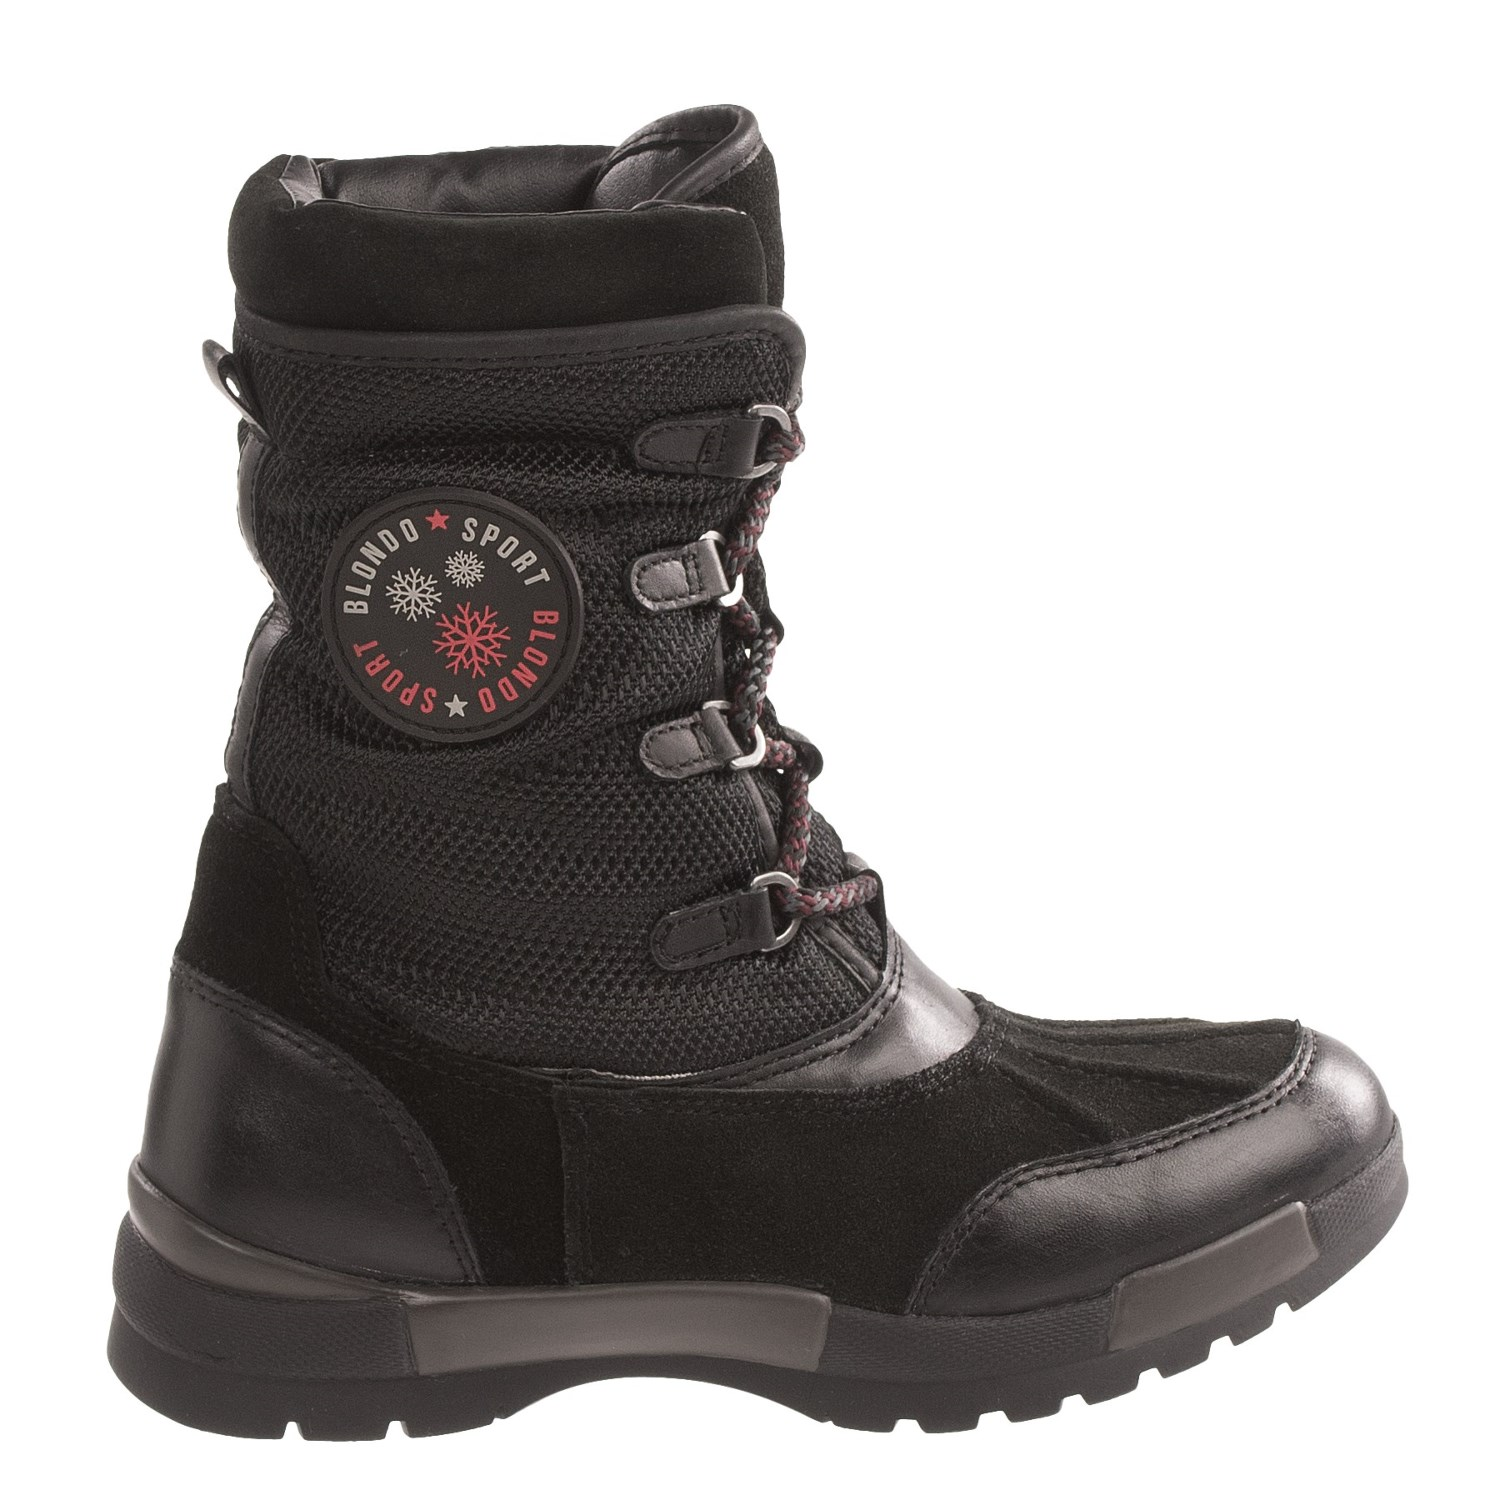 Blondo Steffy Snow Boots (For Women) 7407D - Save 78%